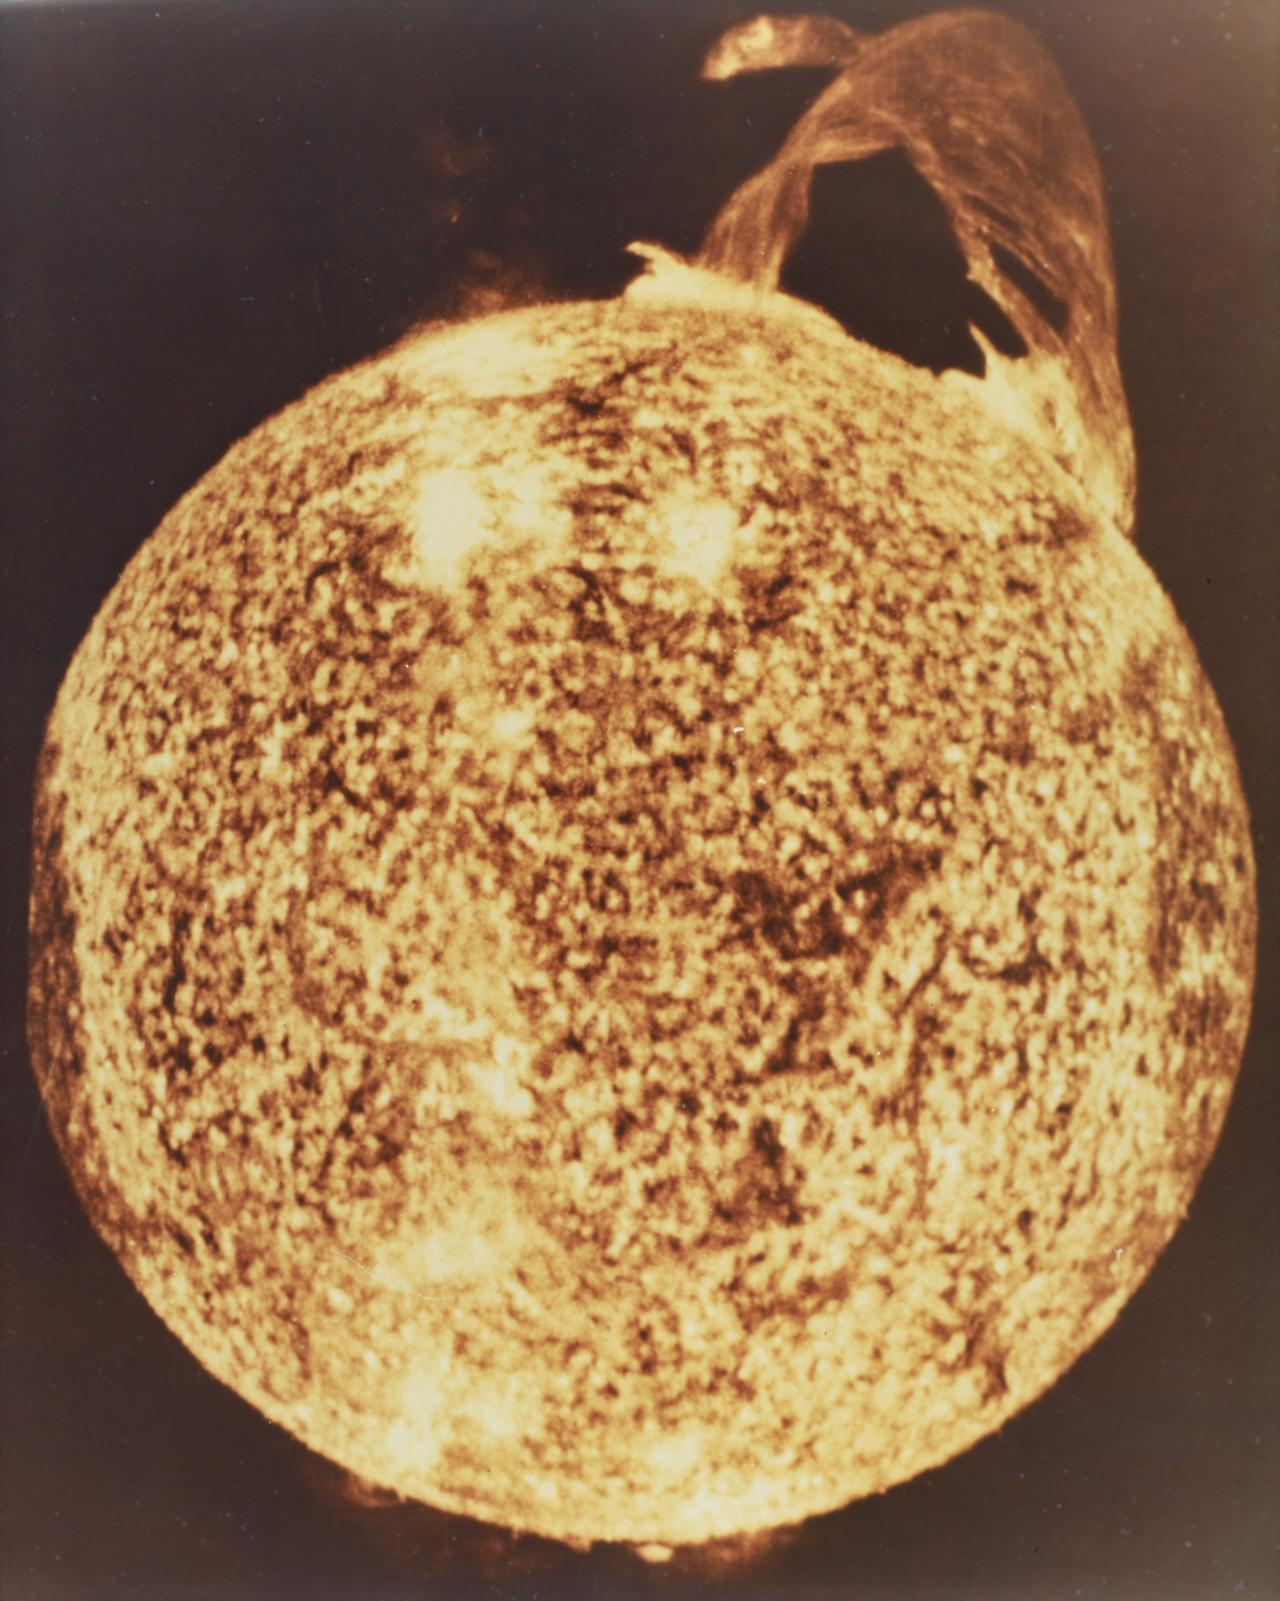 December 1973 solar flare recorded by NASA Skylab 6.